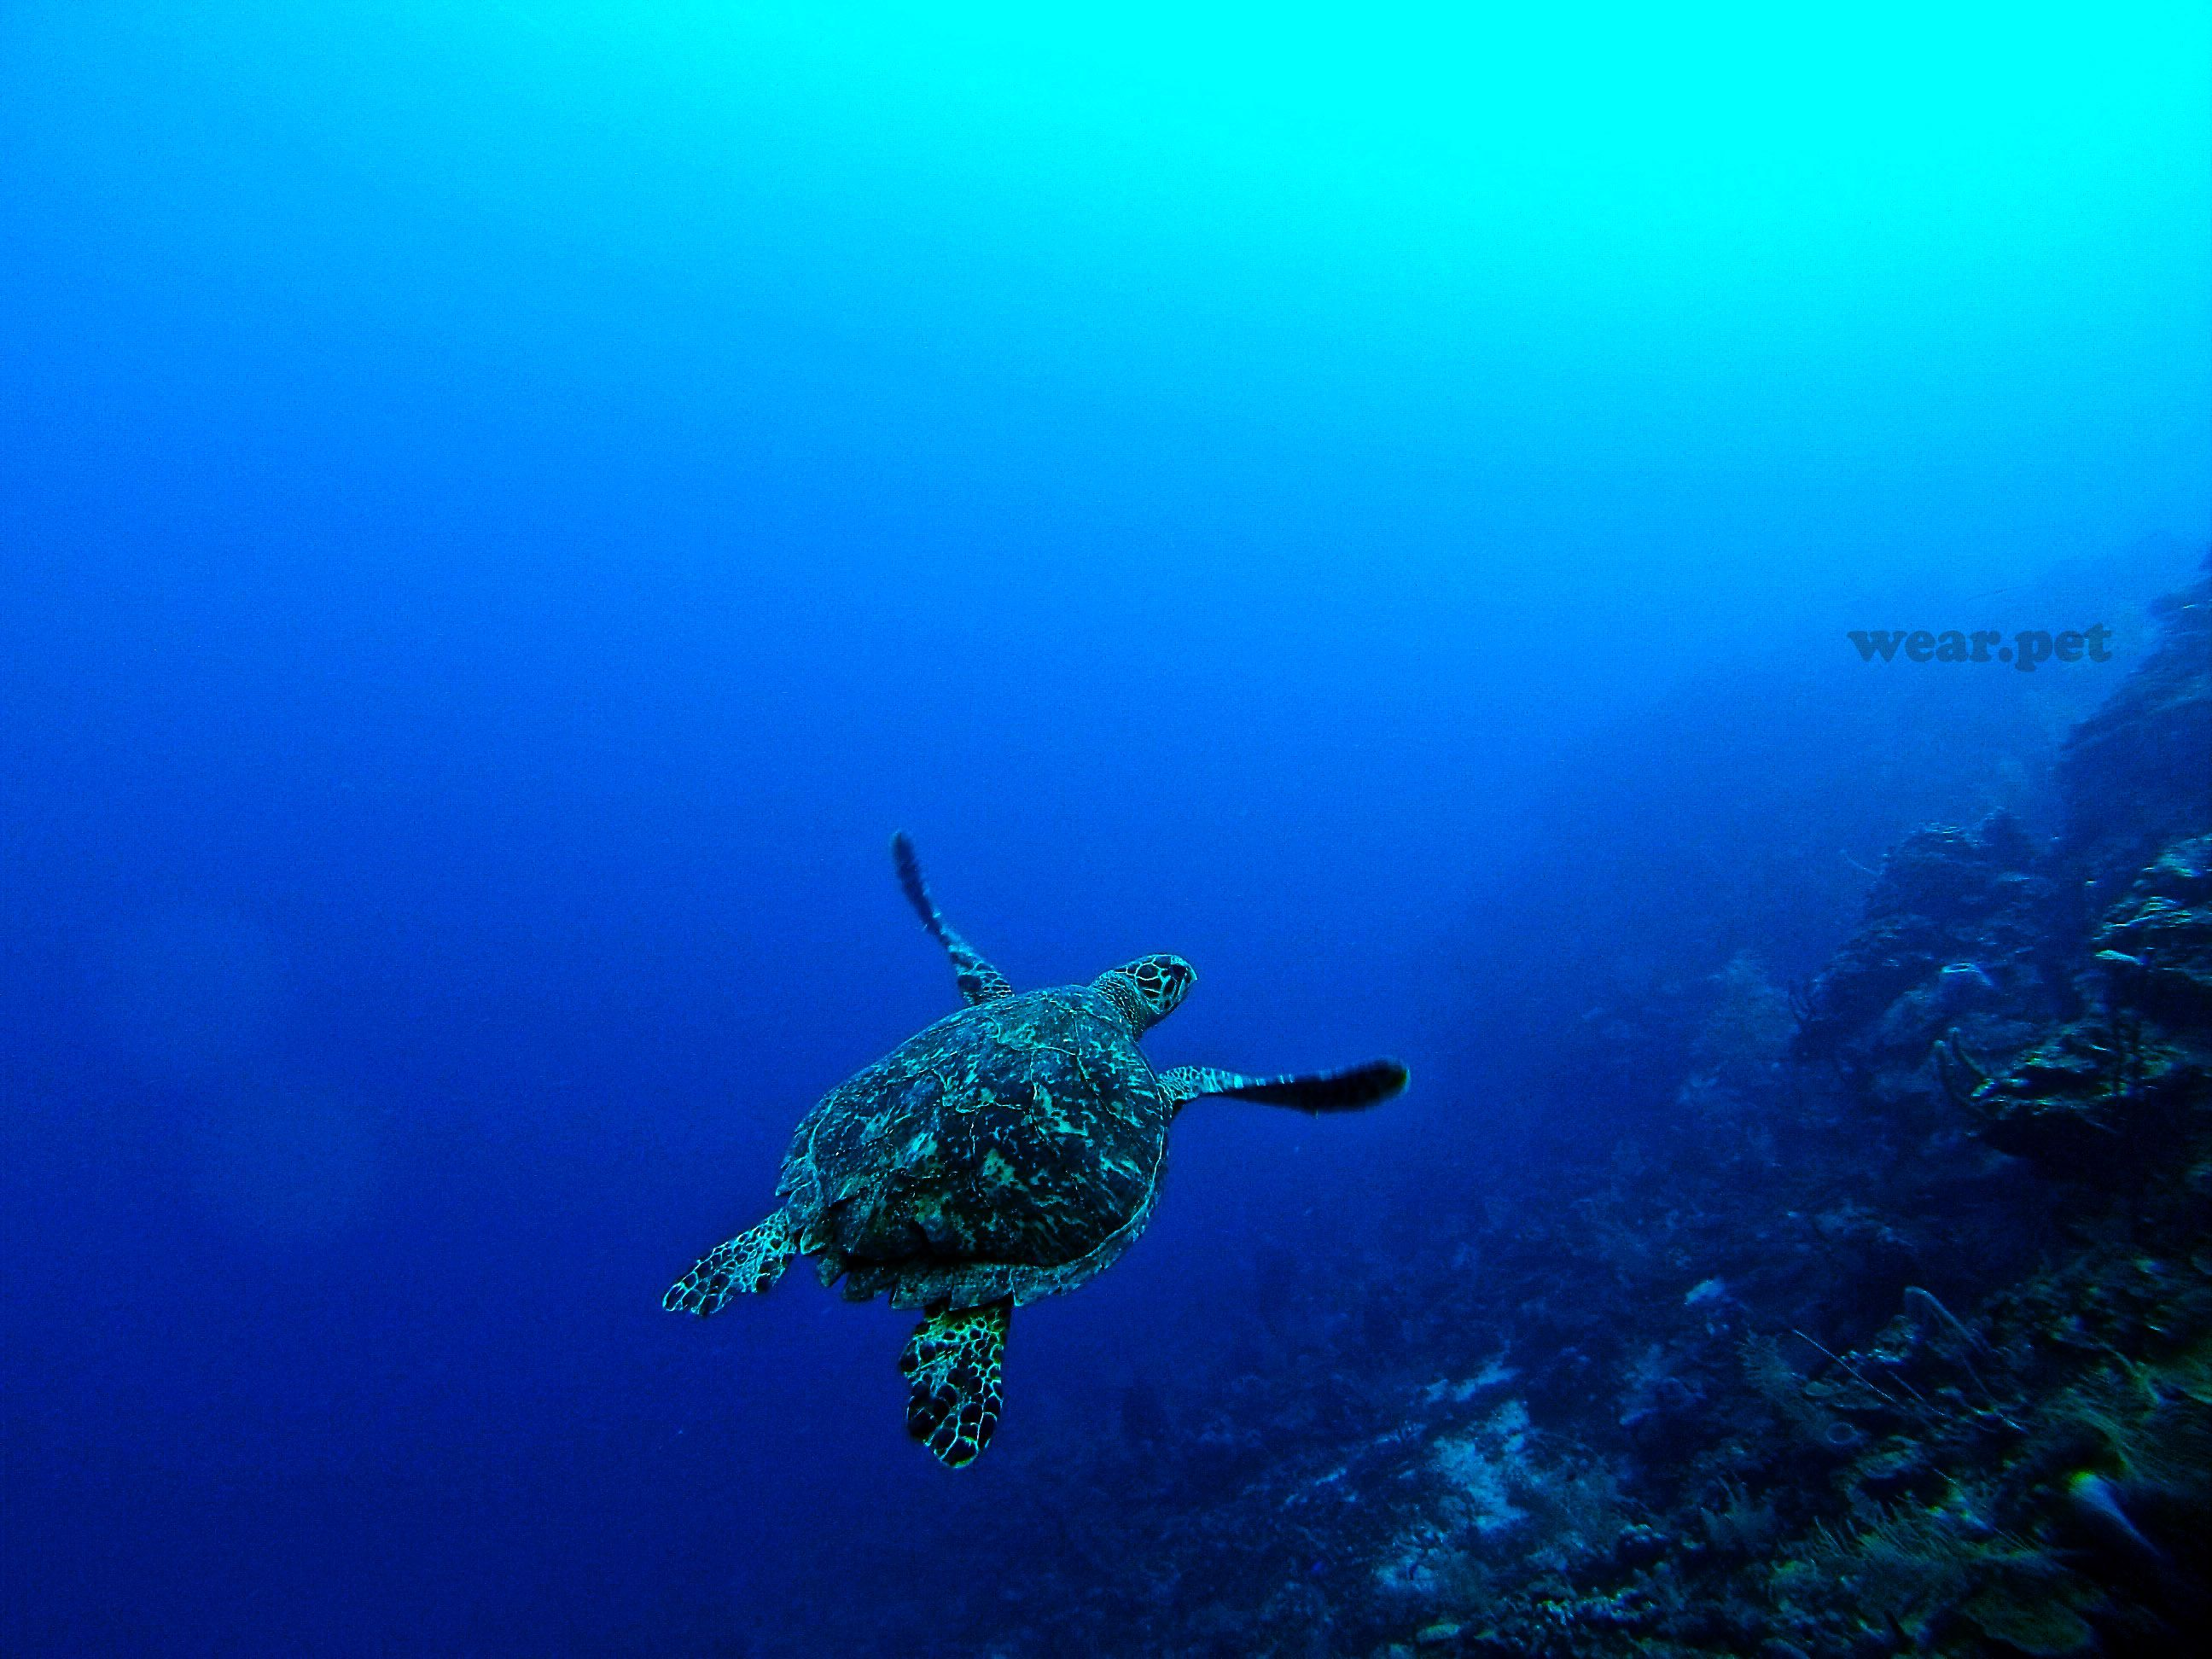 Credit Erin Simmons Roatan Honduras Turtle Sea Photo Underwater Photography Animal Honduras Ocean Animals Love Tortoise Wild Animals Pictures Turtle Animals